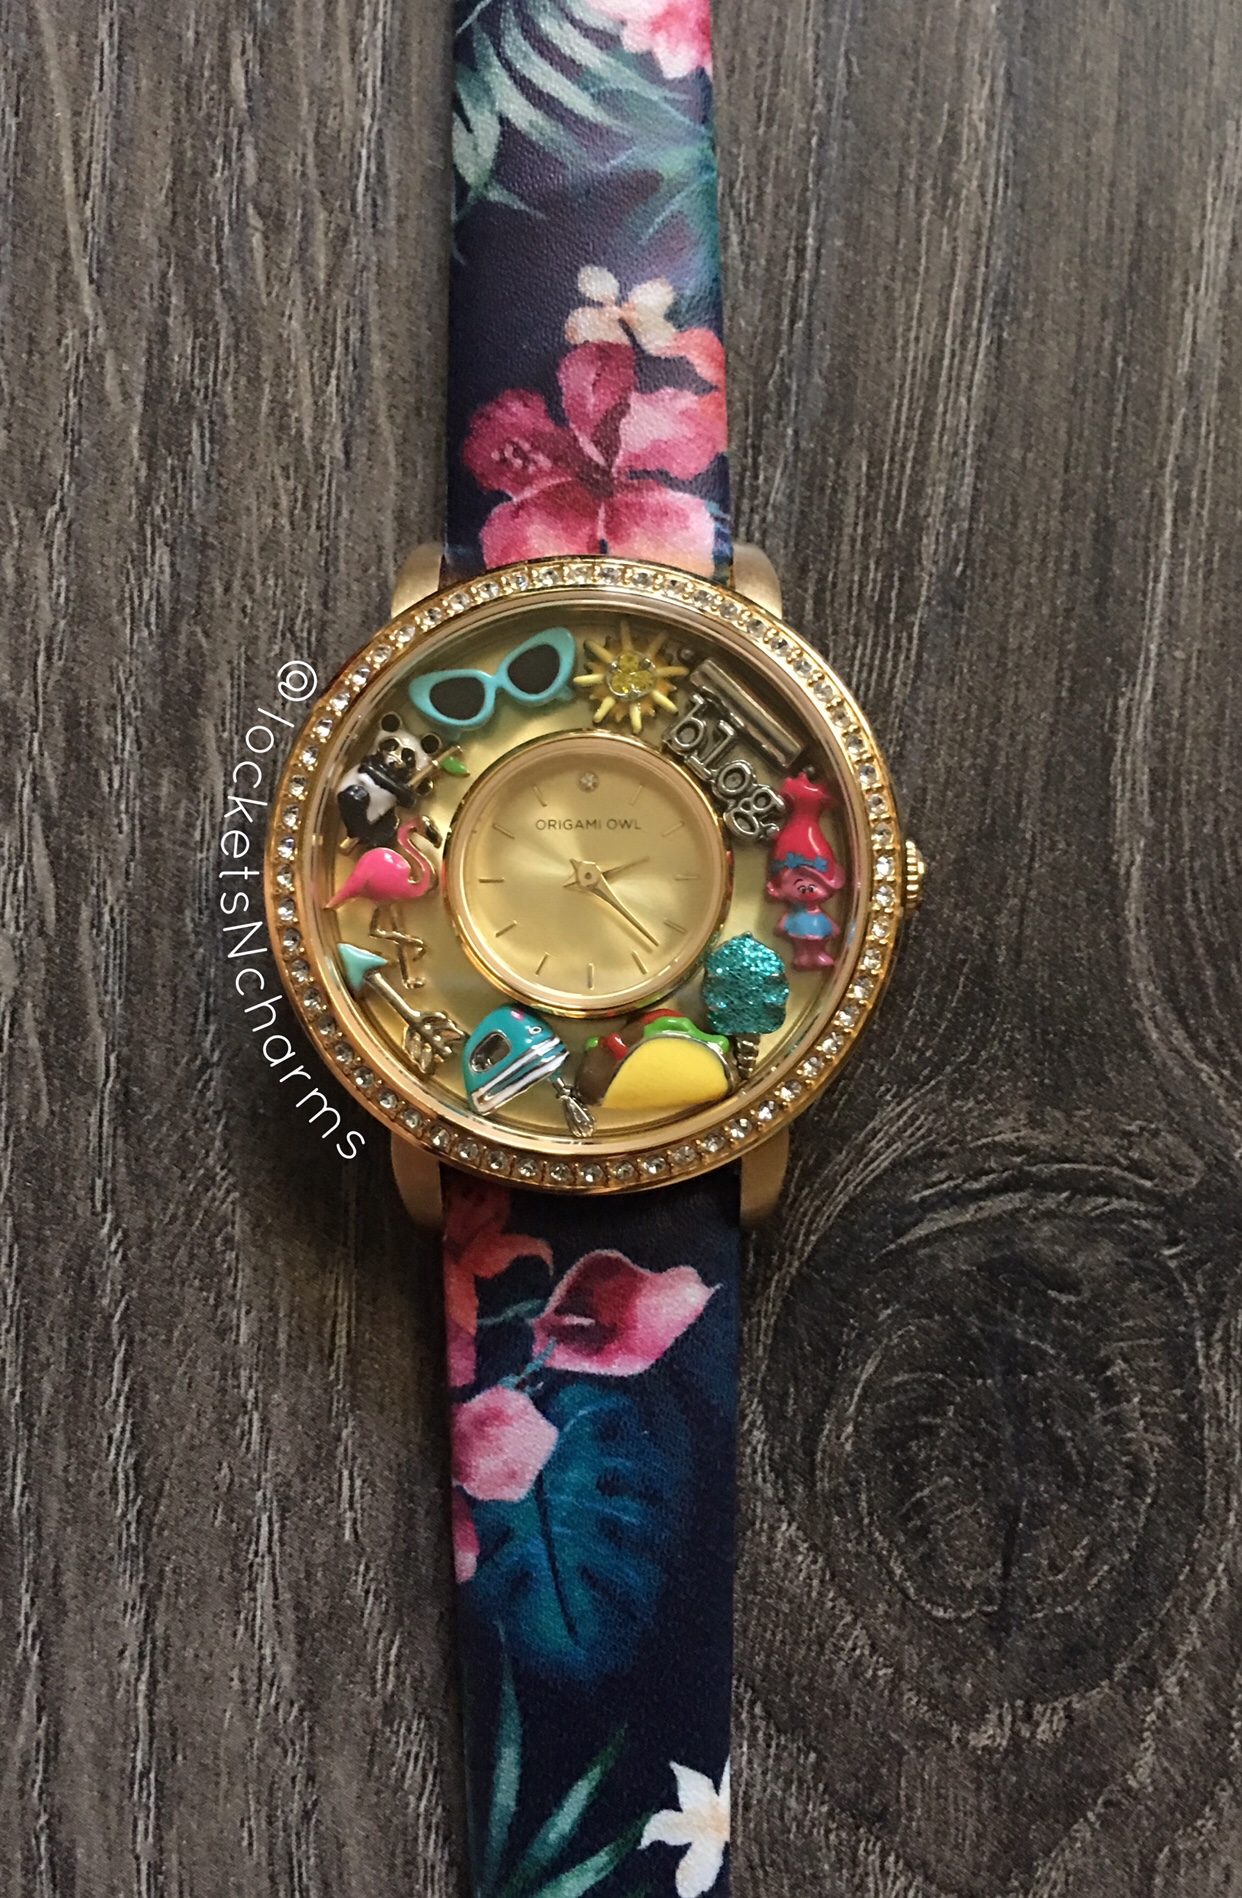 How to Make an Origami Owl | LoveToKnow | 1898x1242